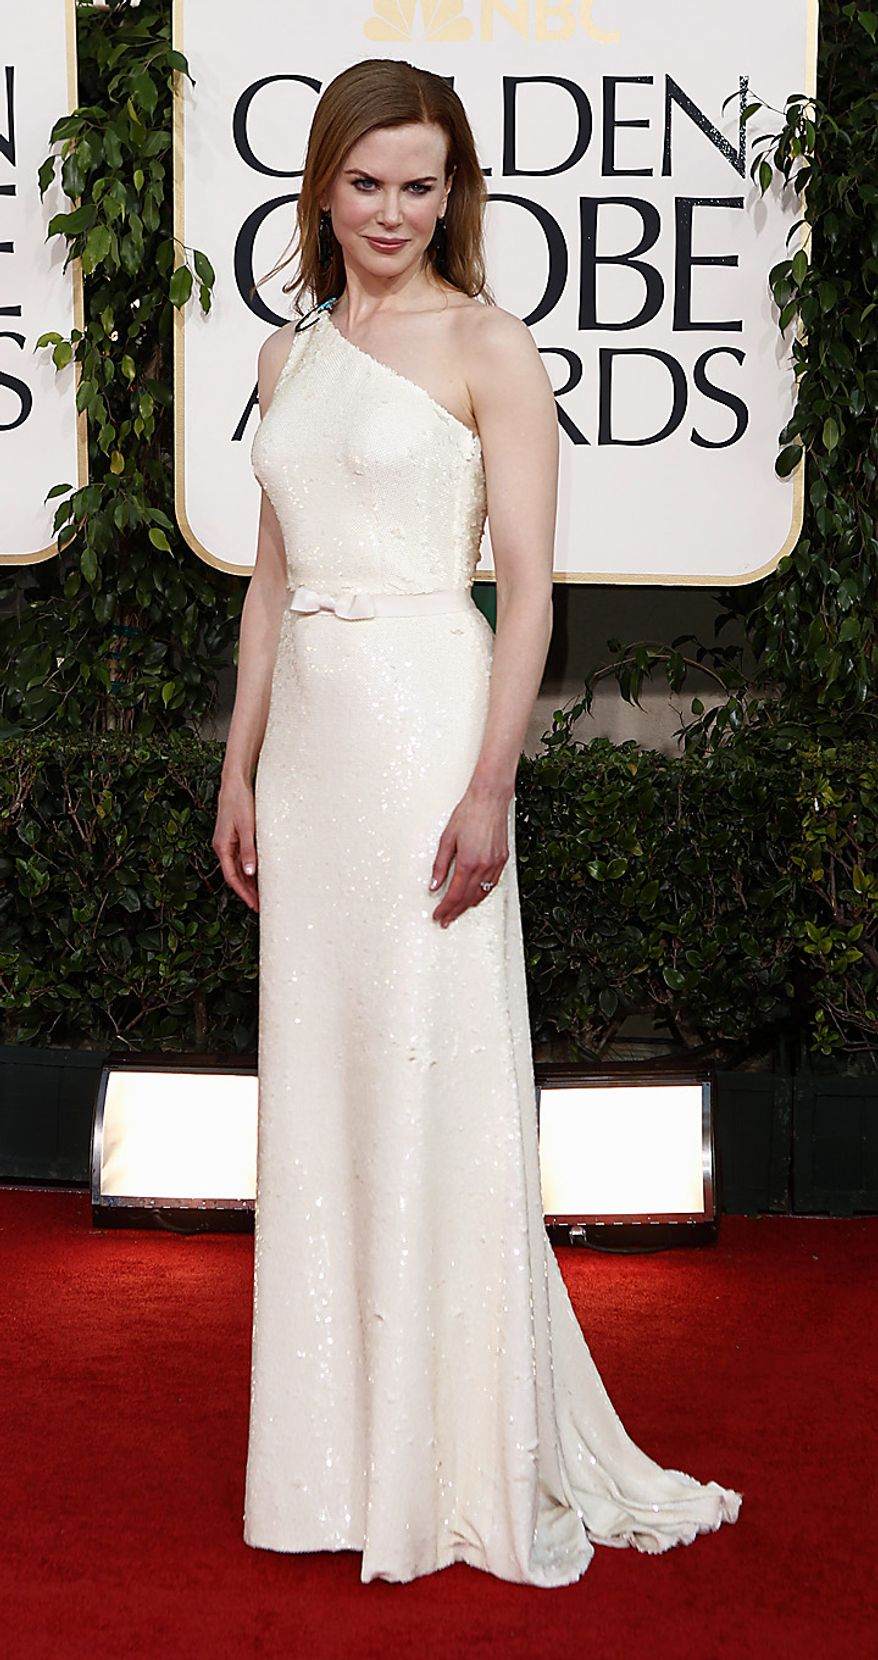 Nicole Kidman arrives for the Golden Globe Awards Sunday, Jan. 16, 2011, in Beverly Hills, Calif. (AP Photo/Matt Sayles)